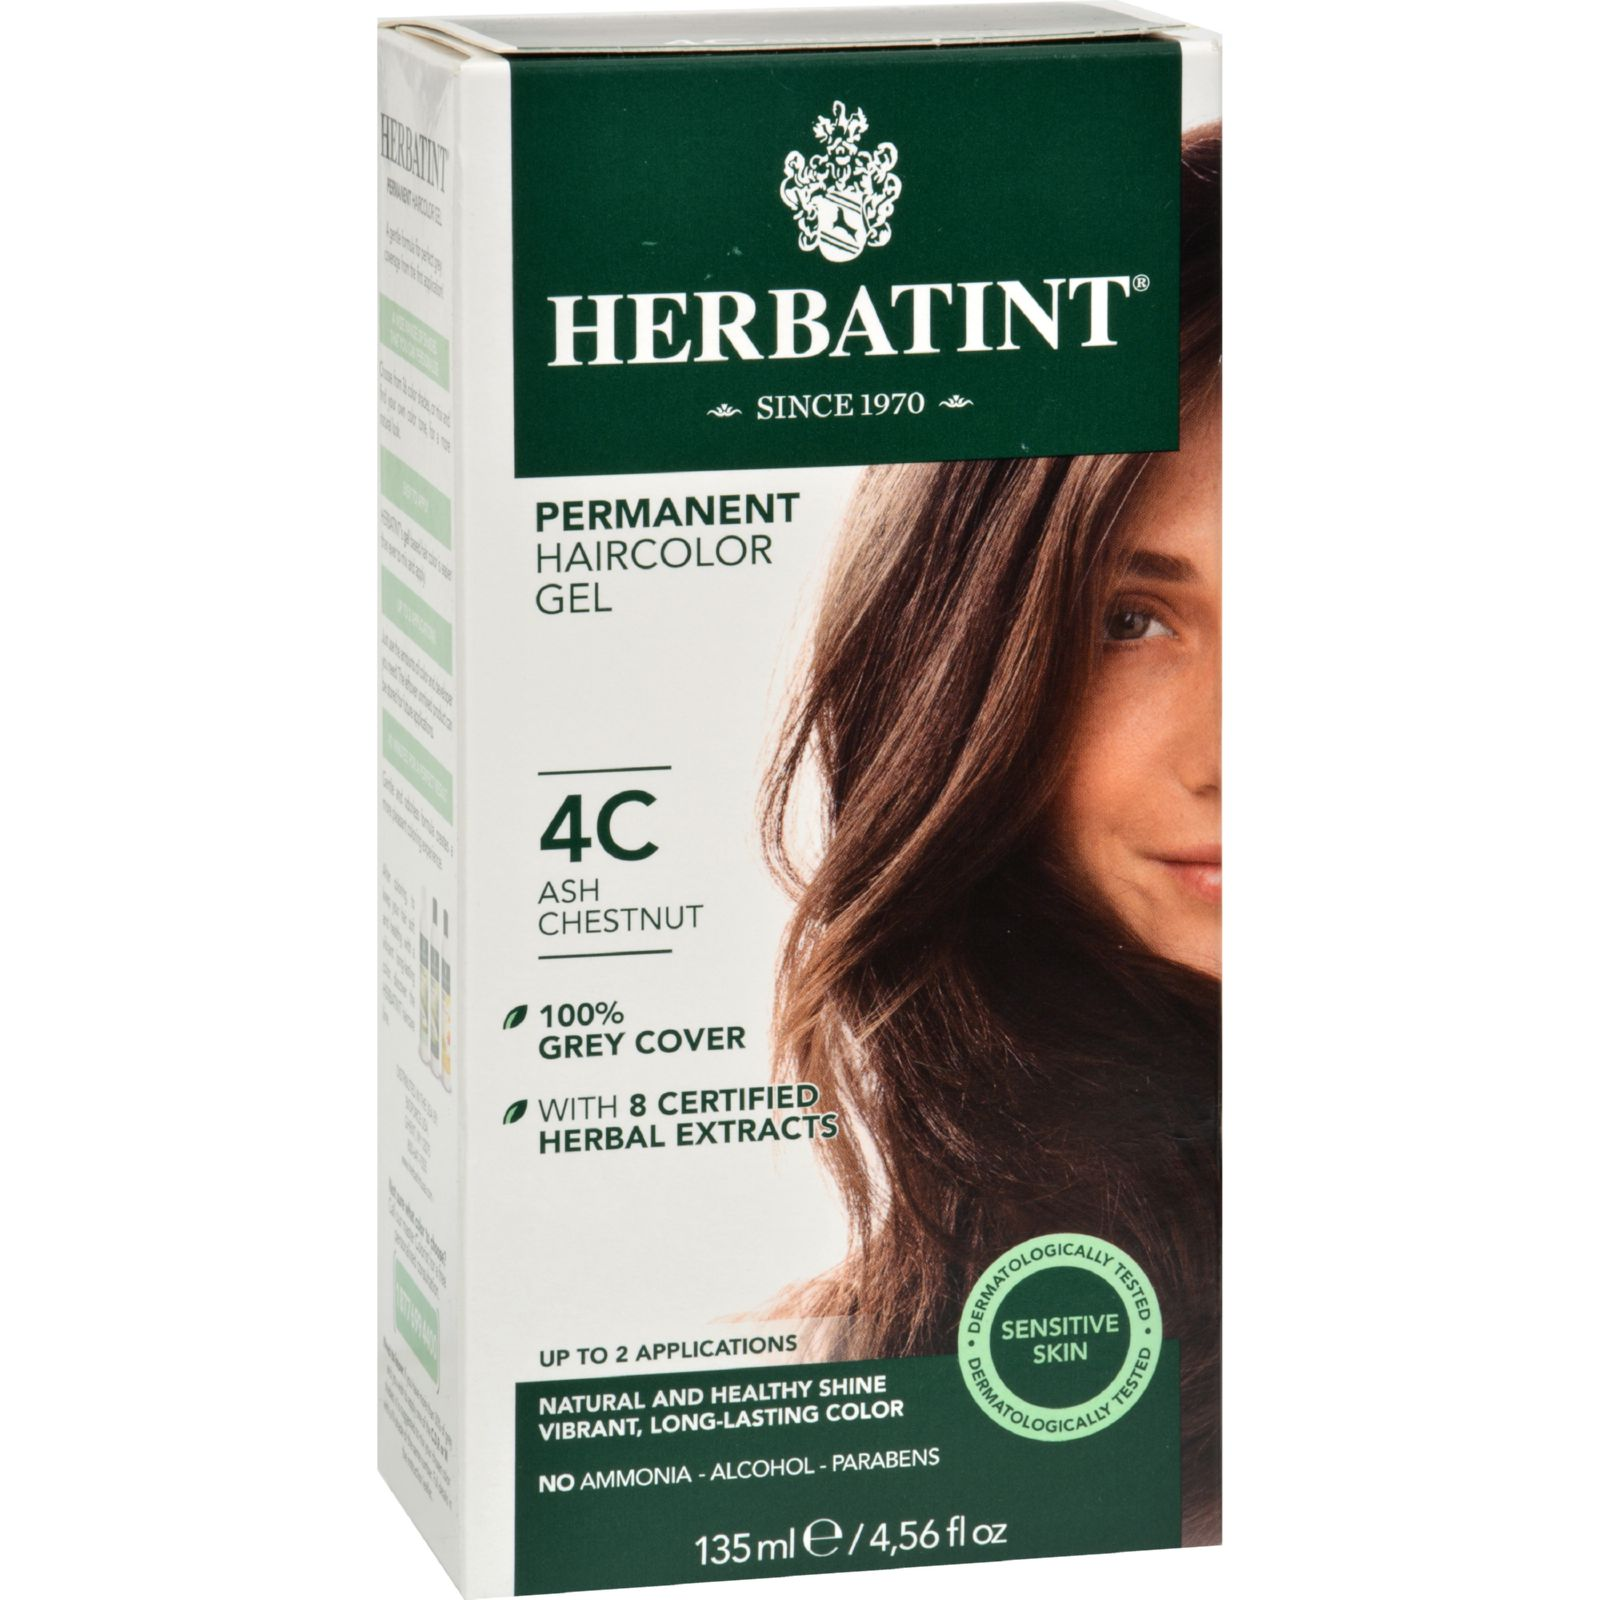 Herbatint Haircolor Kit Ash Chestnut 4C 4.56 fl oz